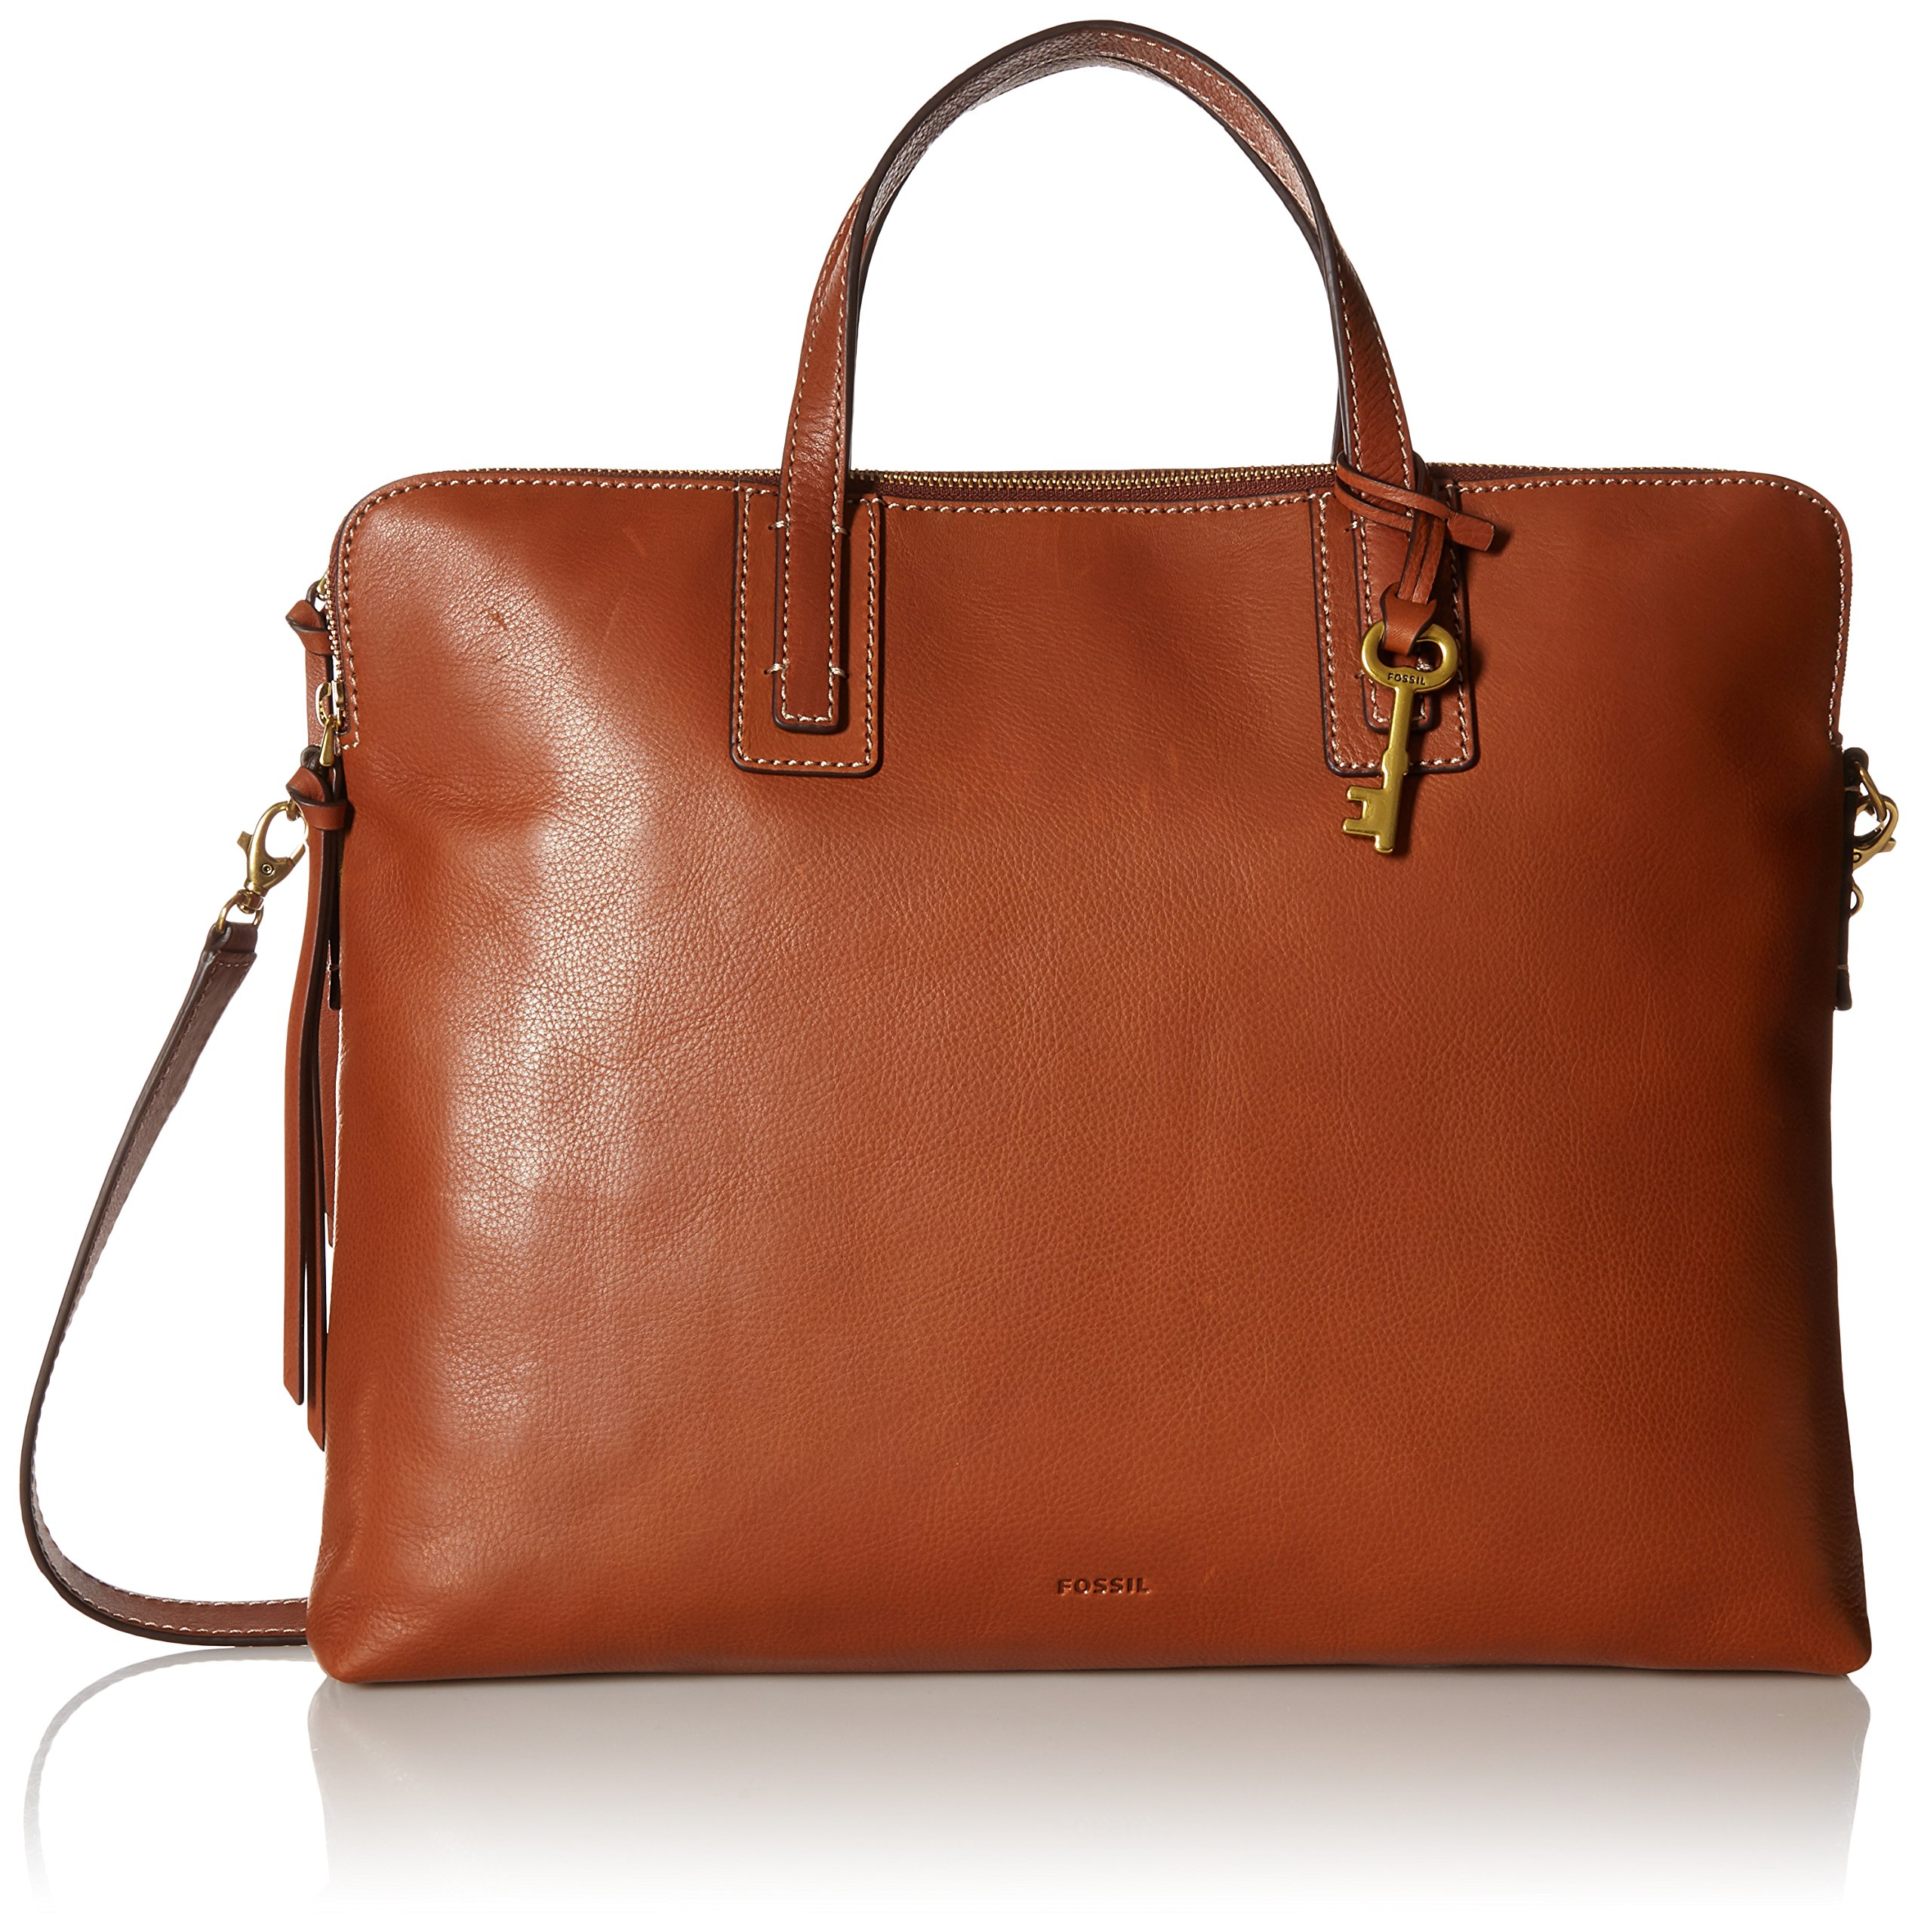 Fossil Emma Laptop Bag, Brown, One Size by Fossil